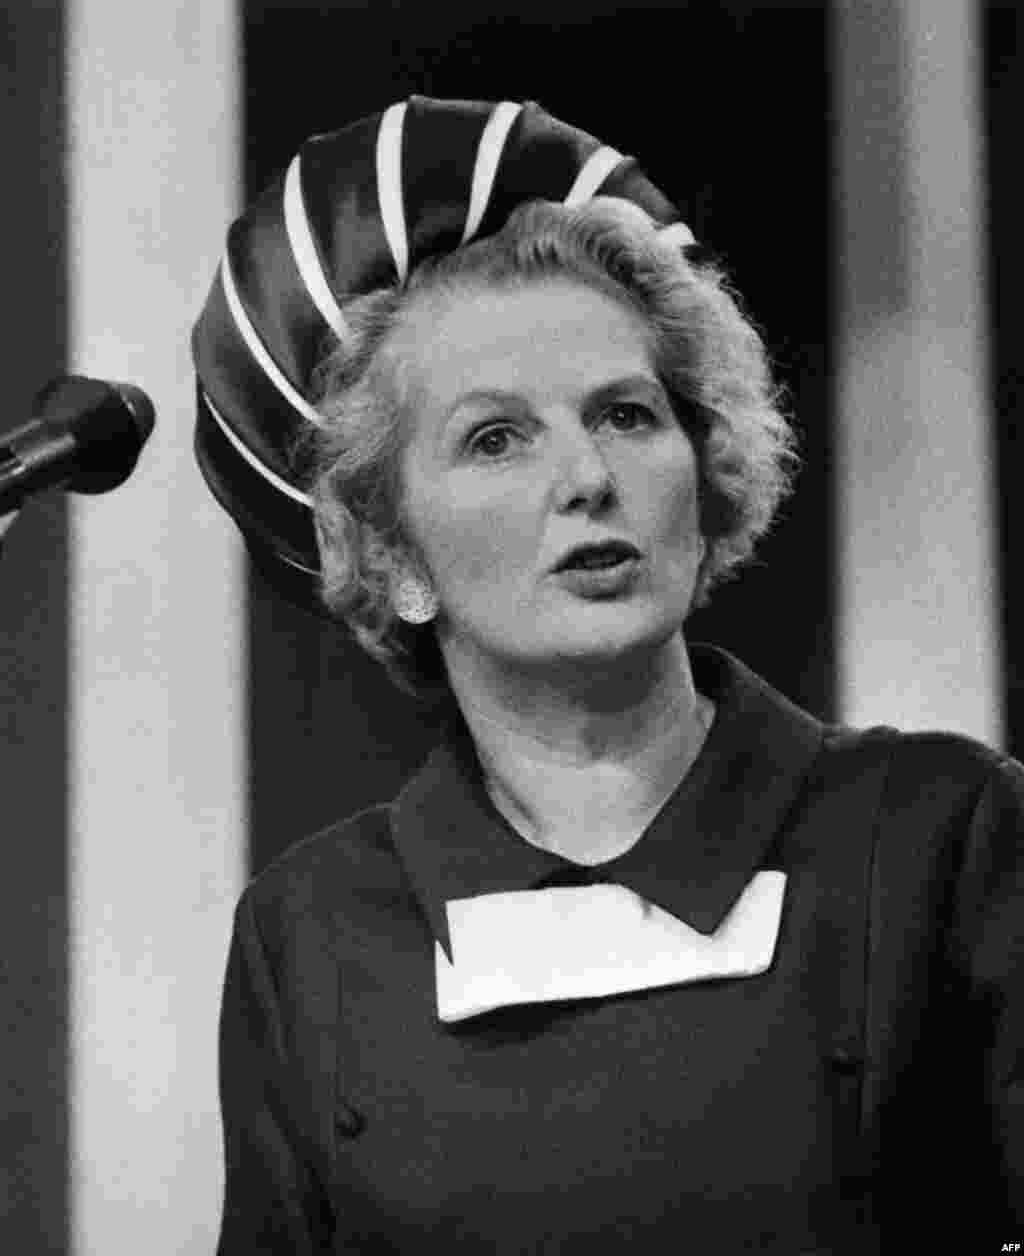 Margaret Thatcher shown in October 1970, when she was secretary of state for education and science in the government of Edward Heath